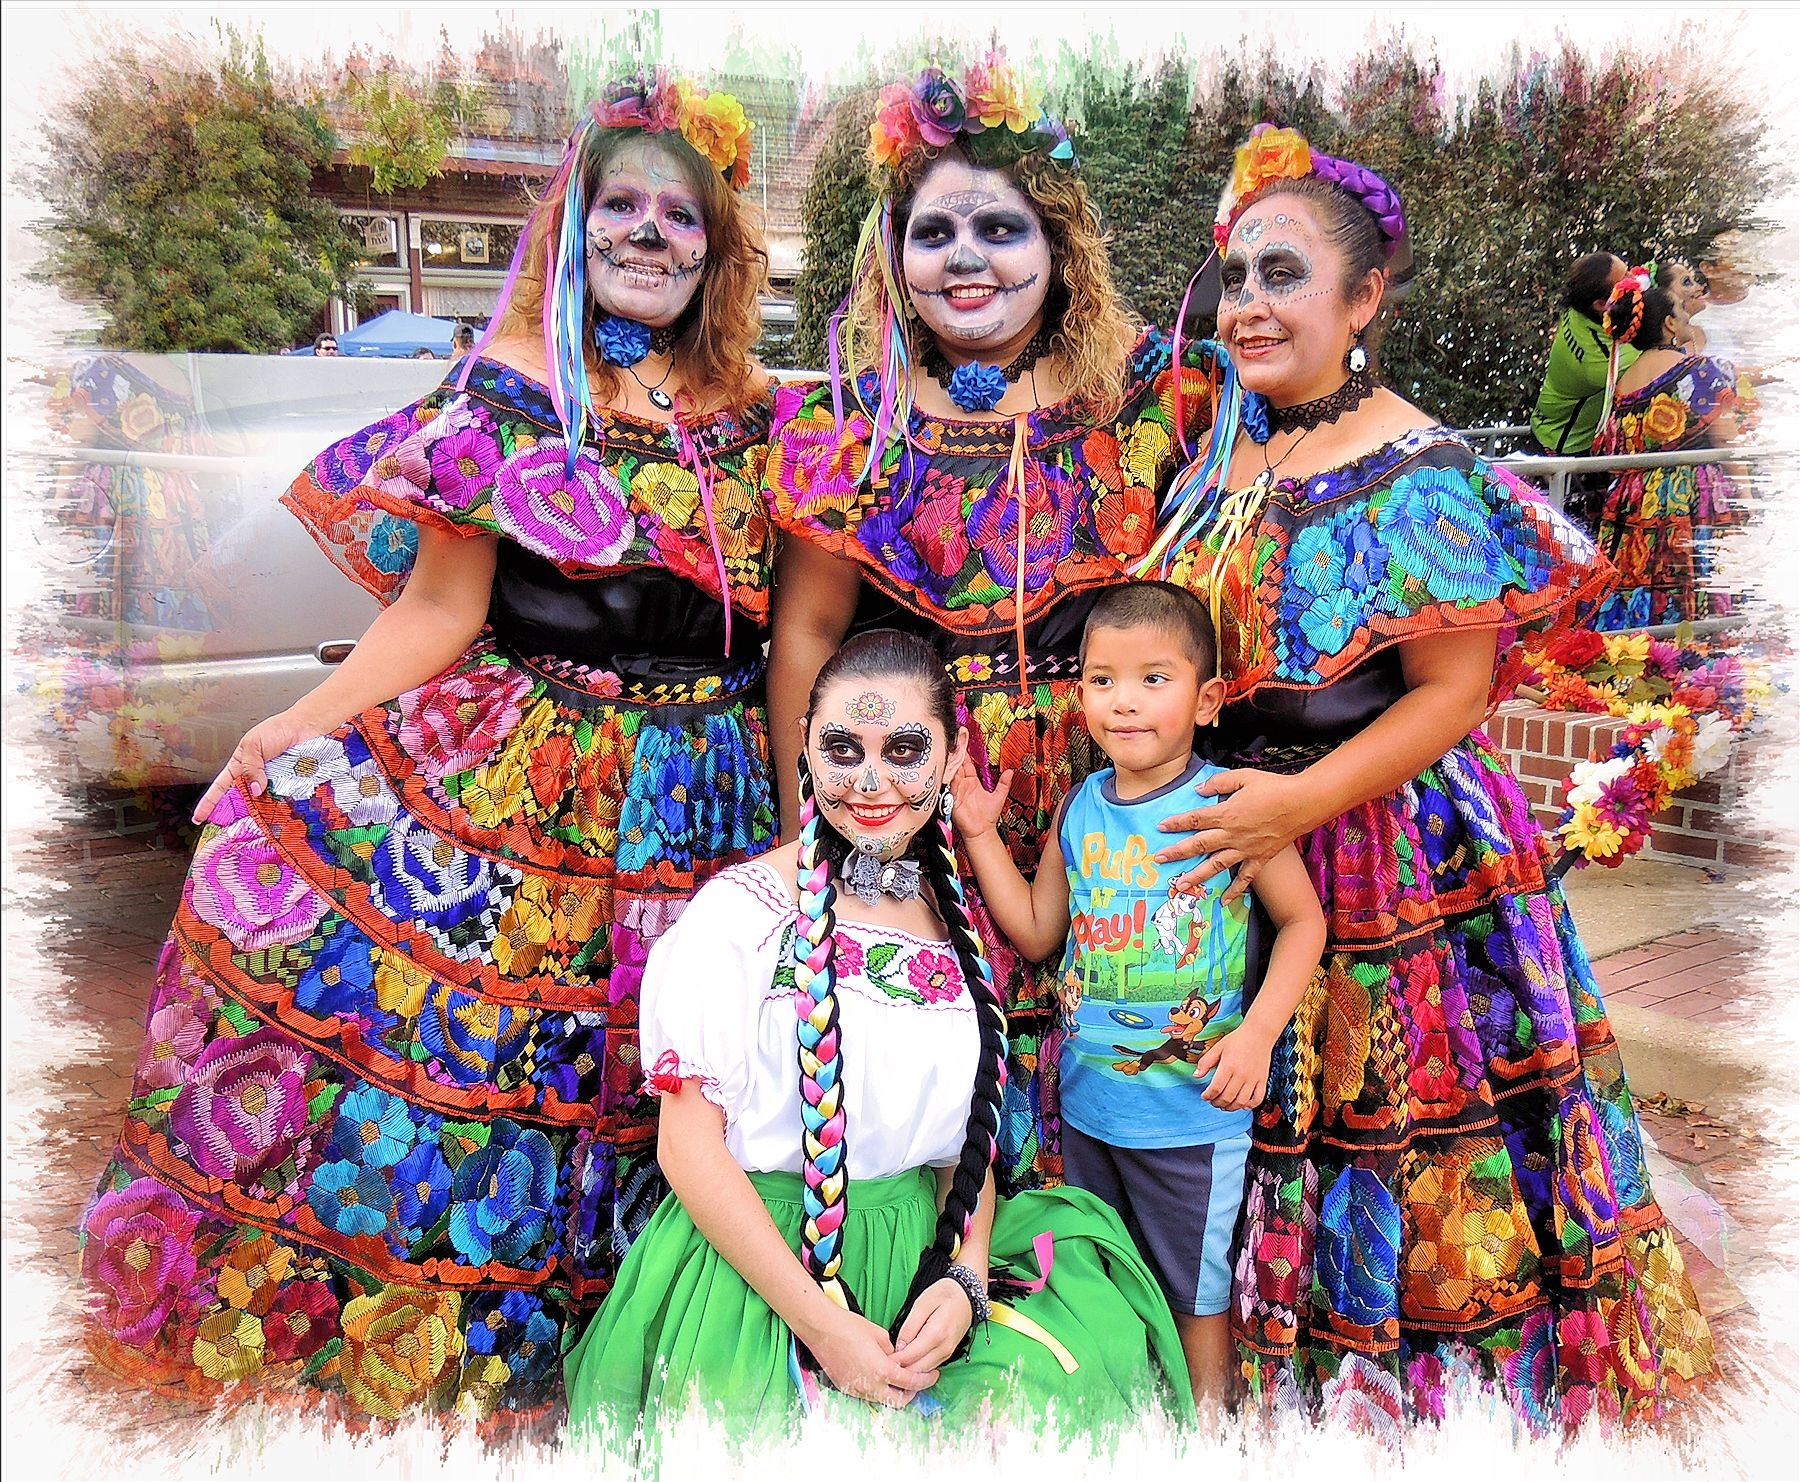 The Ketzaly Folkorica Mexicana Dancers at the Dios de Los Muertos Festival in Historic Nacogdoches